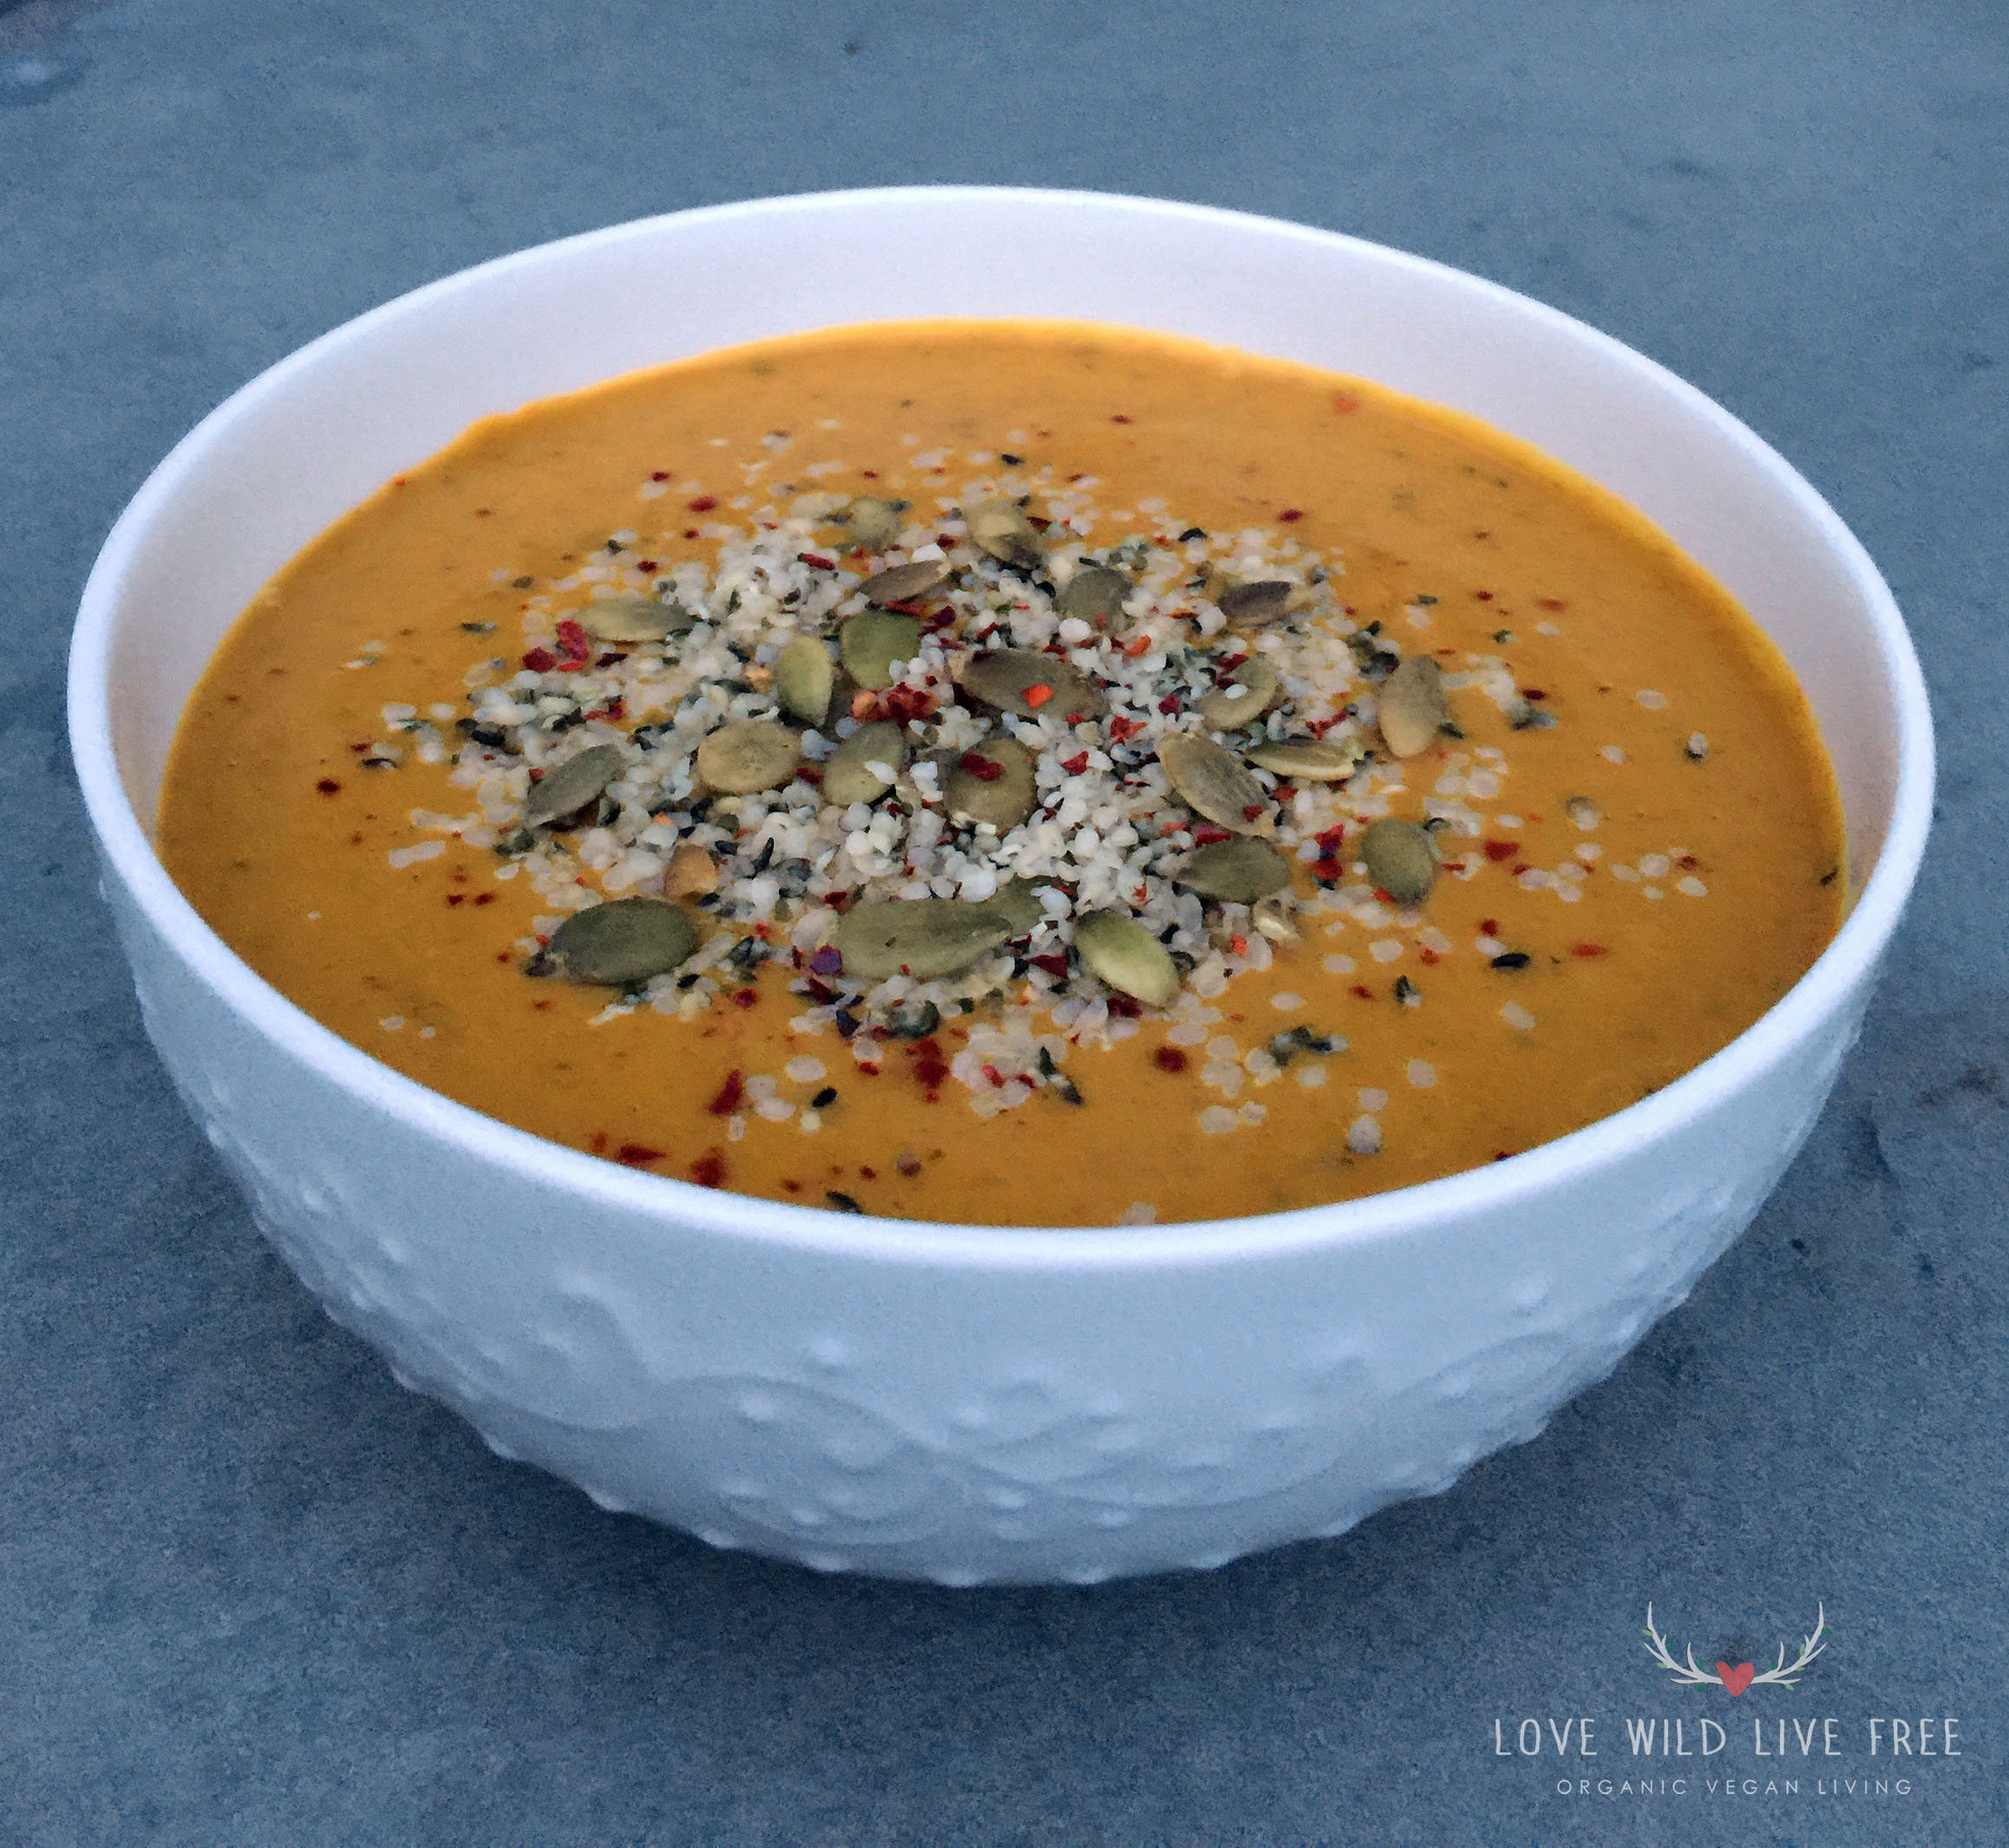 The spice blend of curry, cinnamon and red pepper flakes in this soup,  add a spicy immune boosting kick, which is perfect as the cool weather rolls in.